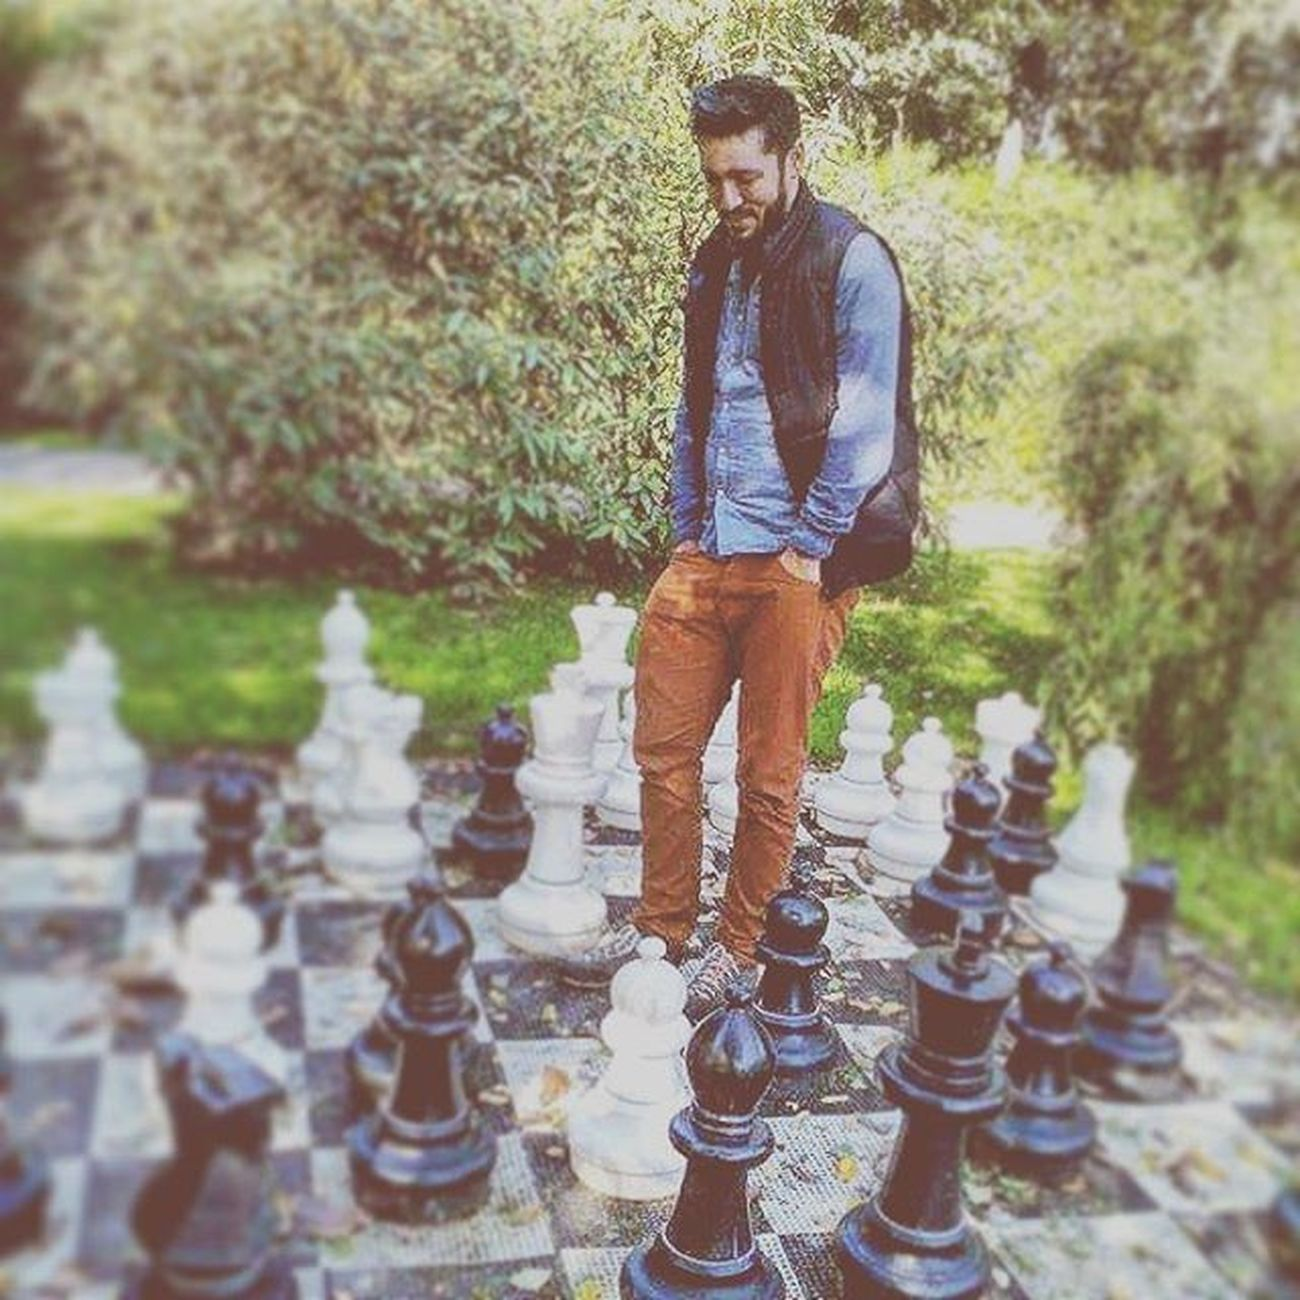 Chess Photooftheday Likelife Moves MakingMoves Colorfullife